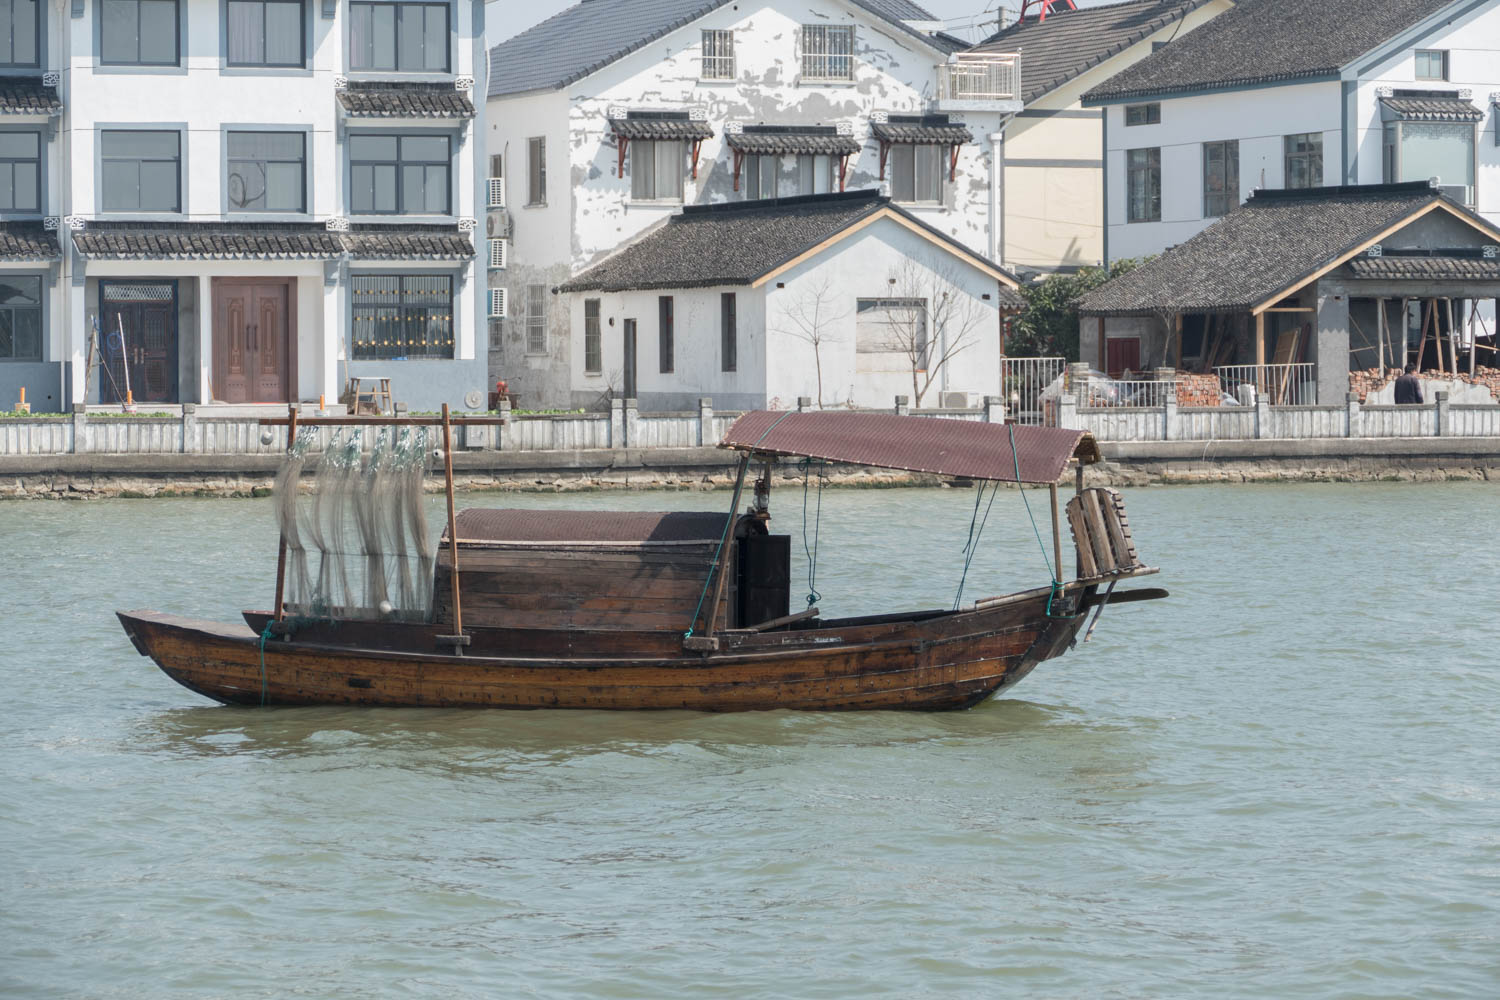 An ancient boat